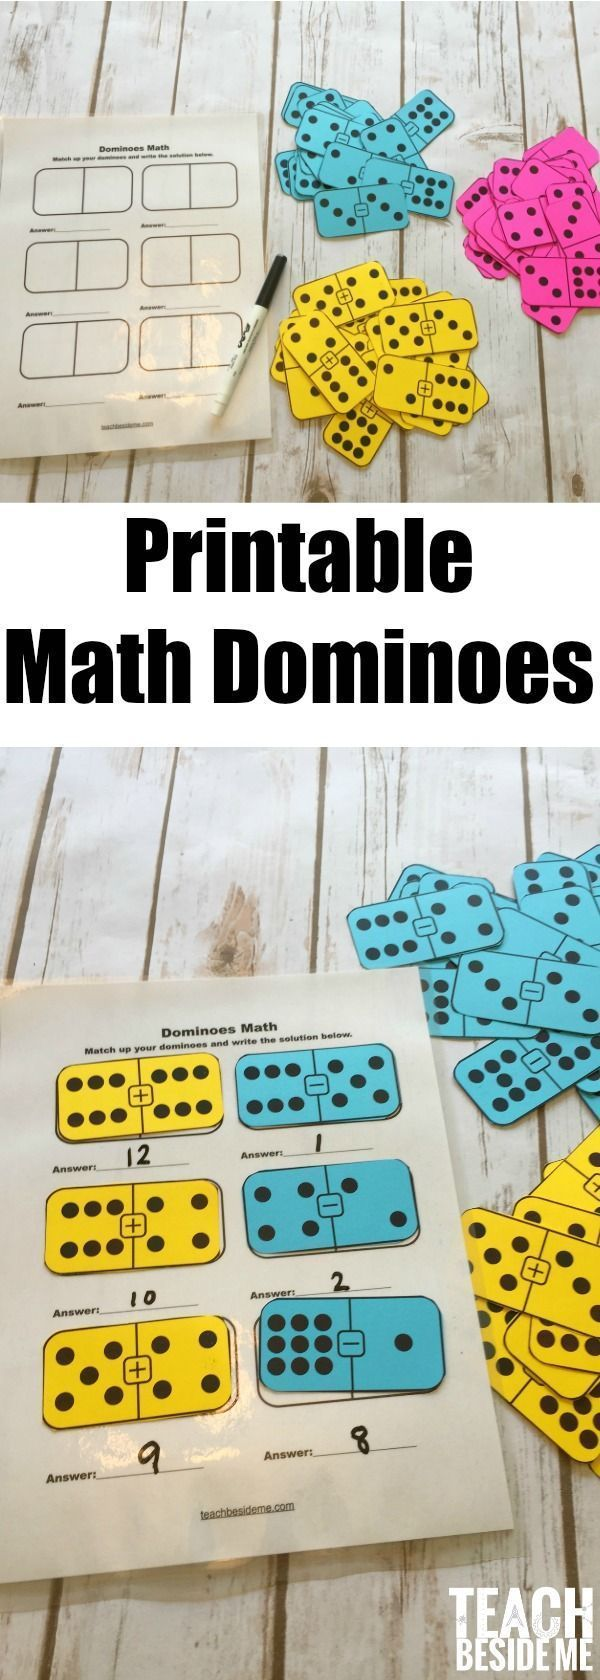 Printable Math Dominoes for addition, subtraction or multiplication. Fun math game or for math centers. Includes three different domino sets. via @karyntripp #mathgames